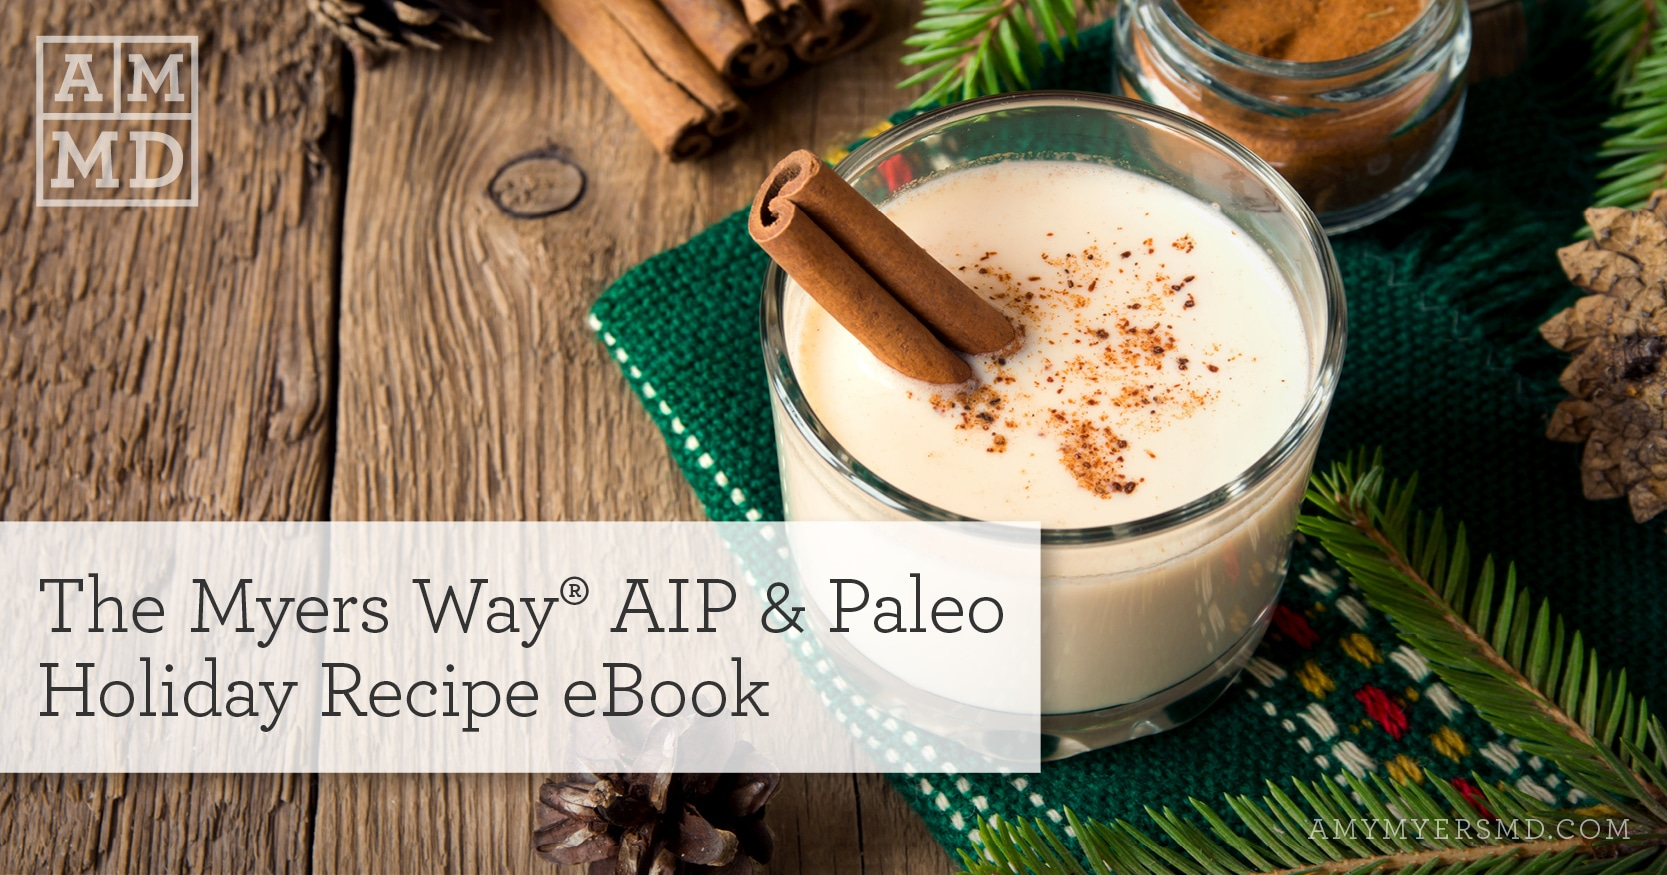 The Myers Way® AIP & Paleo Holiday Recipe eBook - Egg Nog with Cinnamon - Featured Image - Amy Myers MD